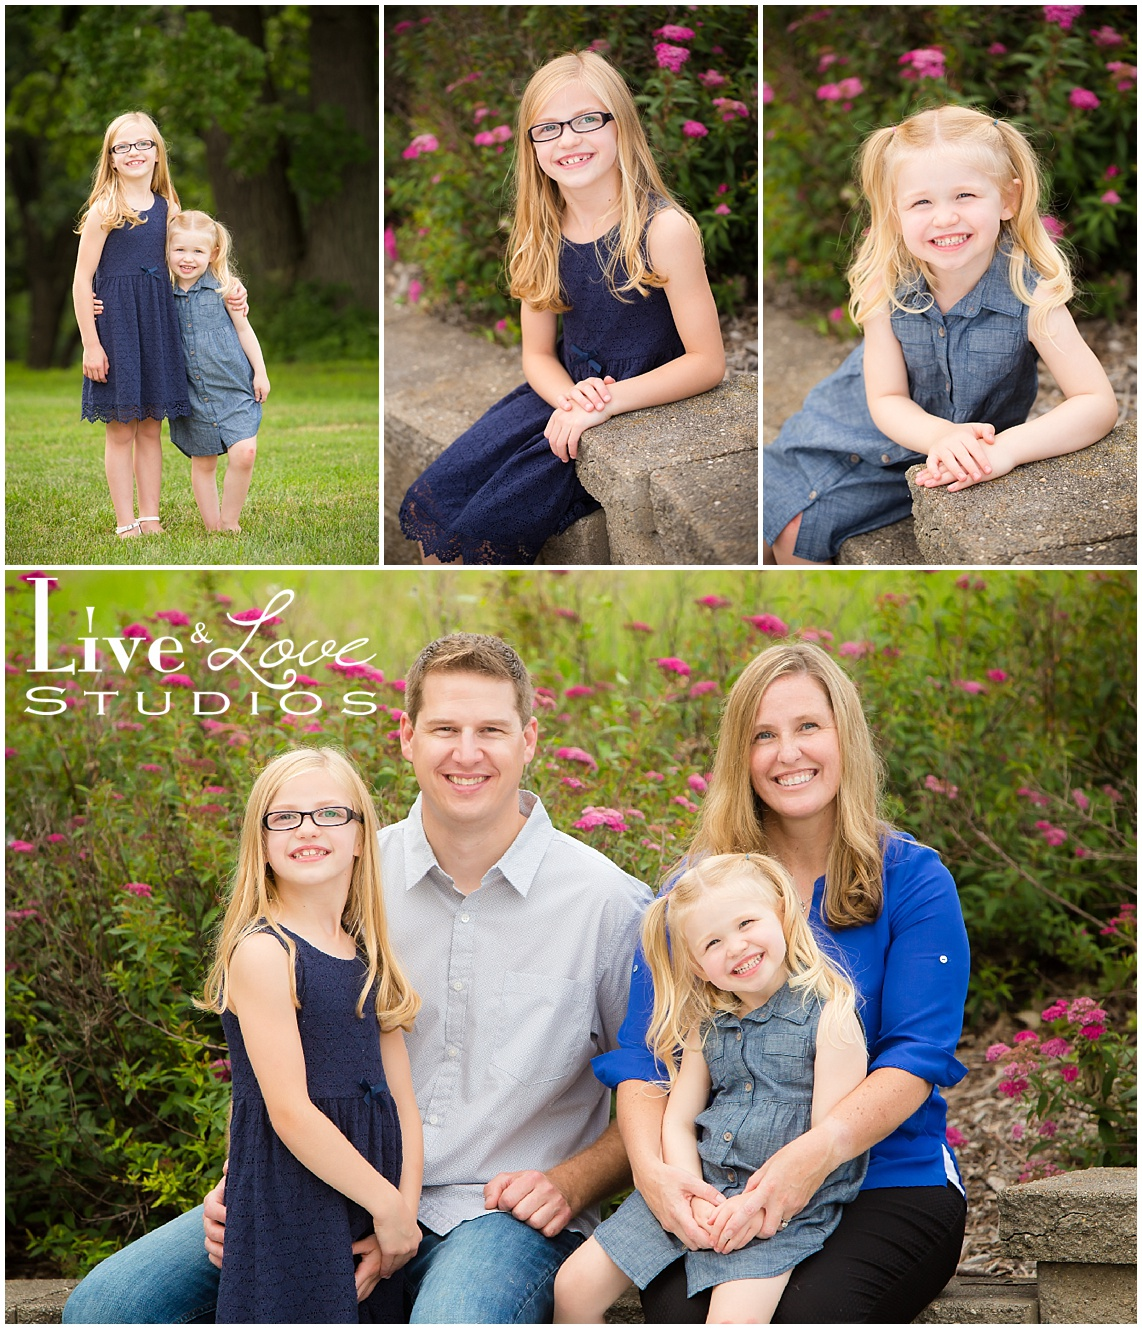 eagan-mn-extended-family-photographer_0064.jpg